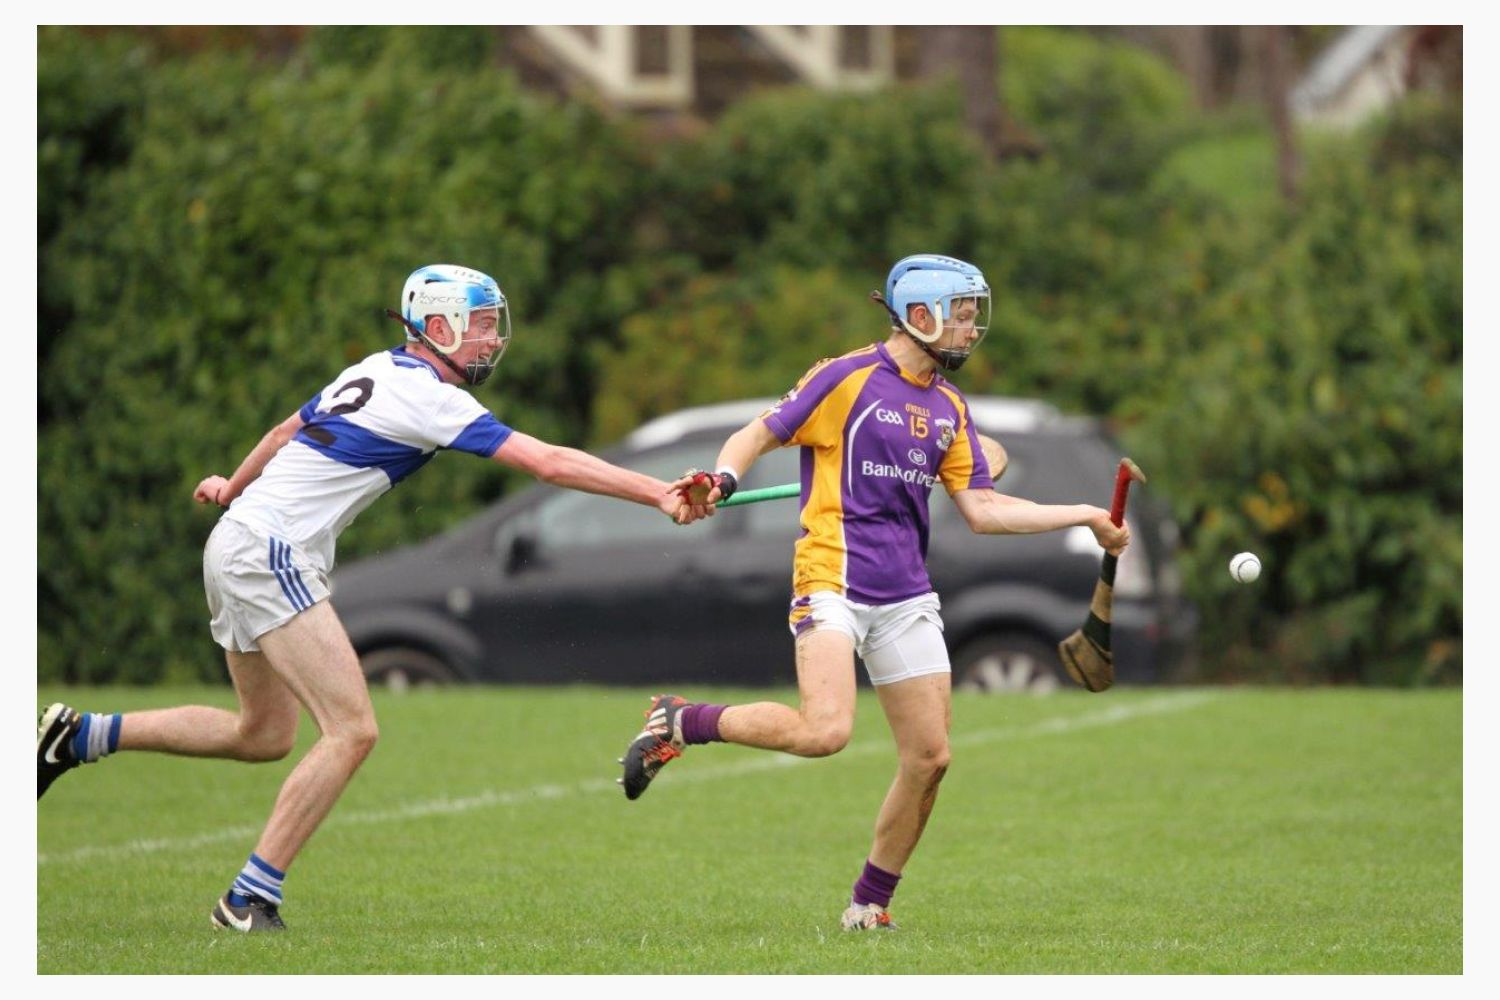 Good win for Minors in Championship match